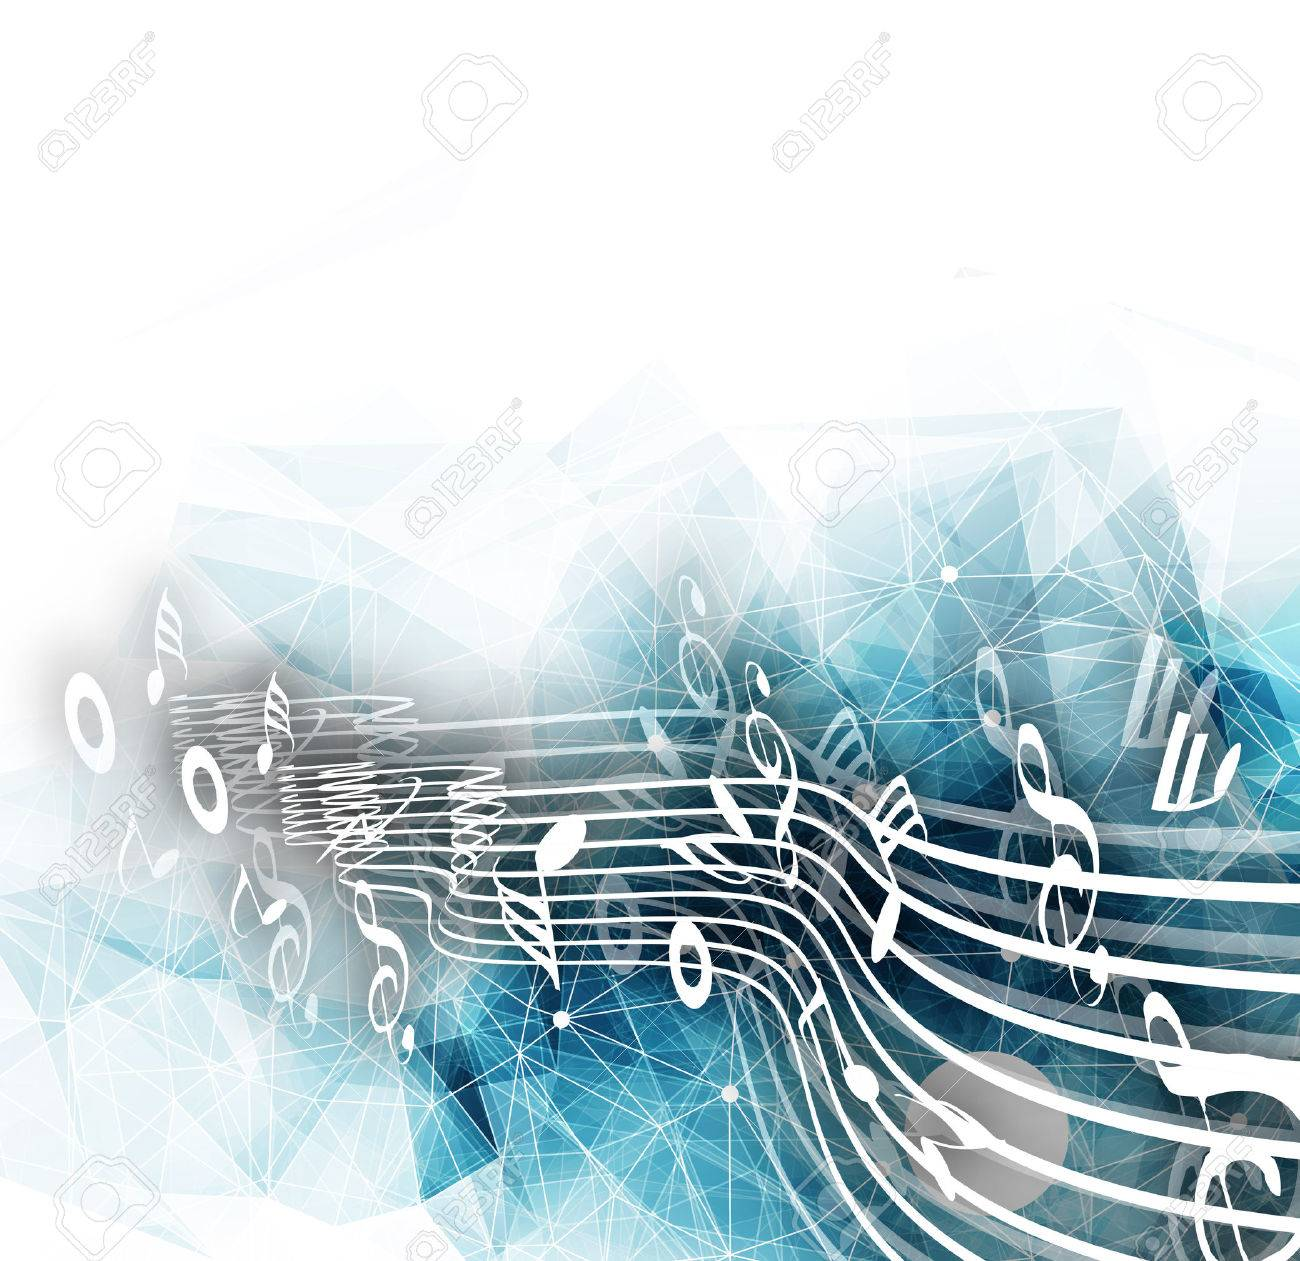 Abstract musical notes background for design use. - 51158635